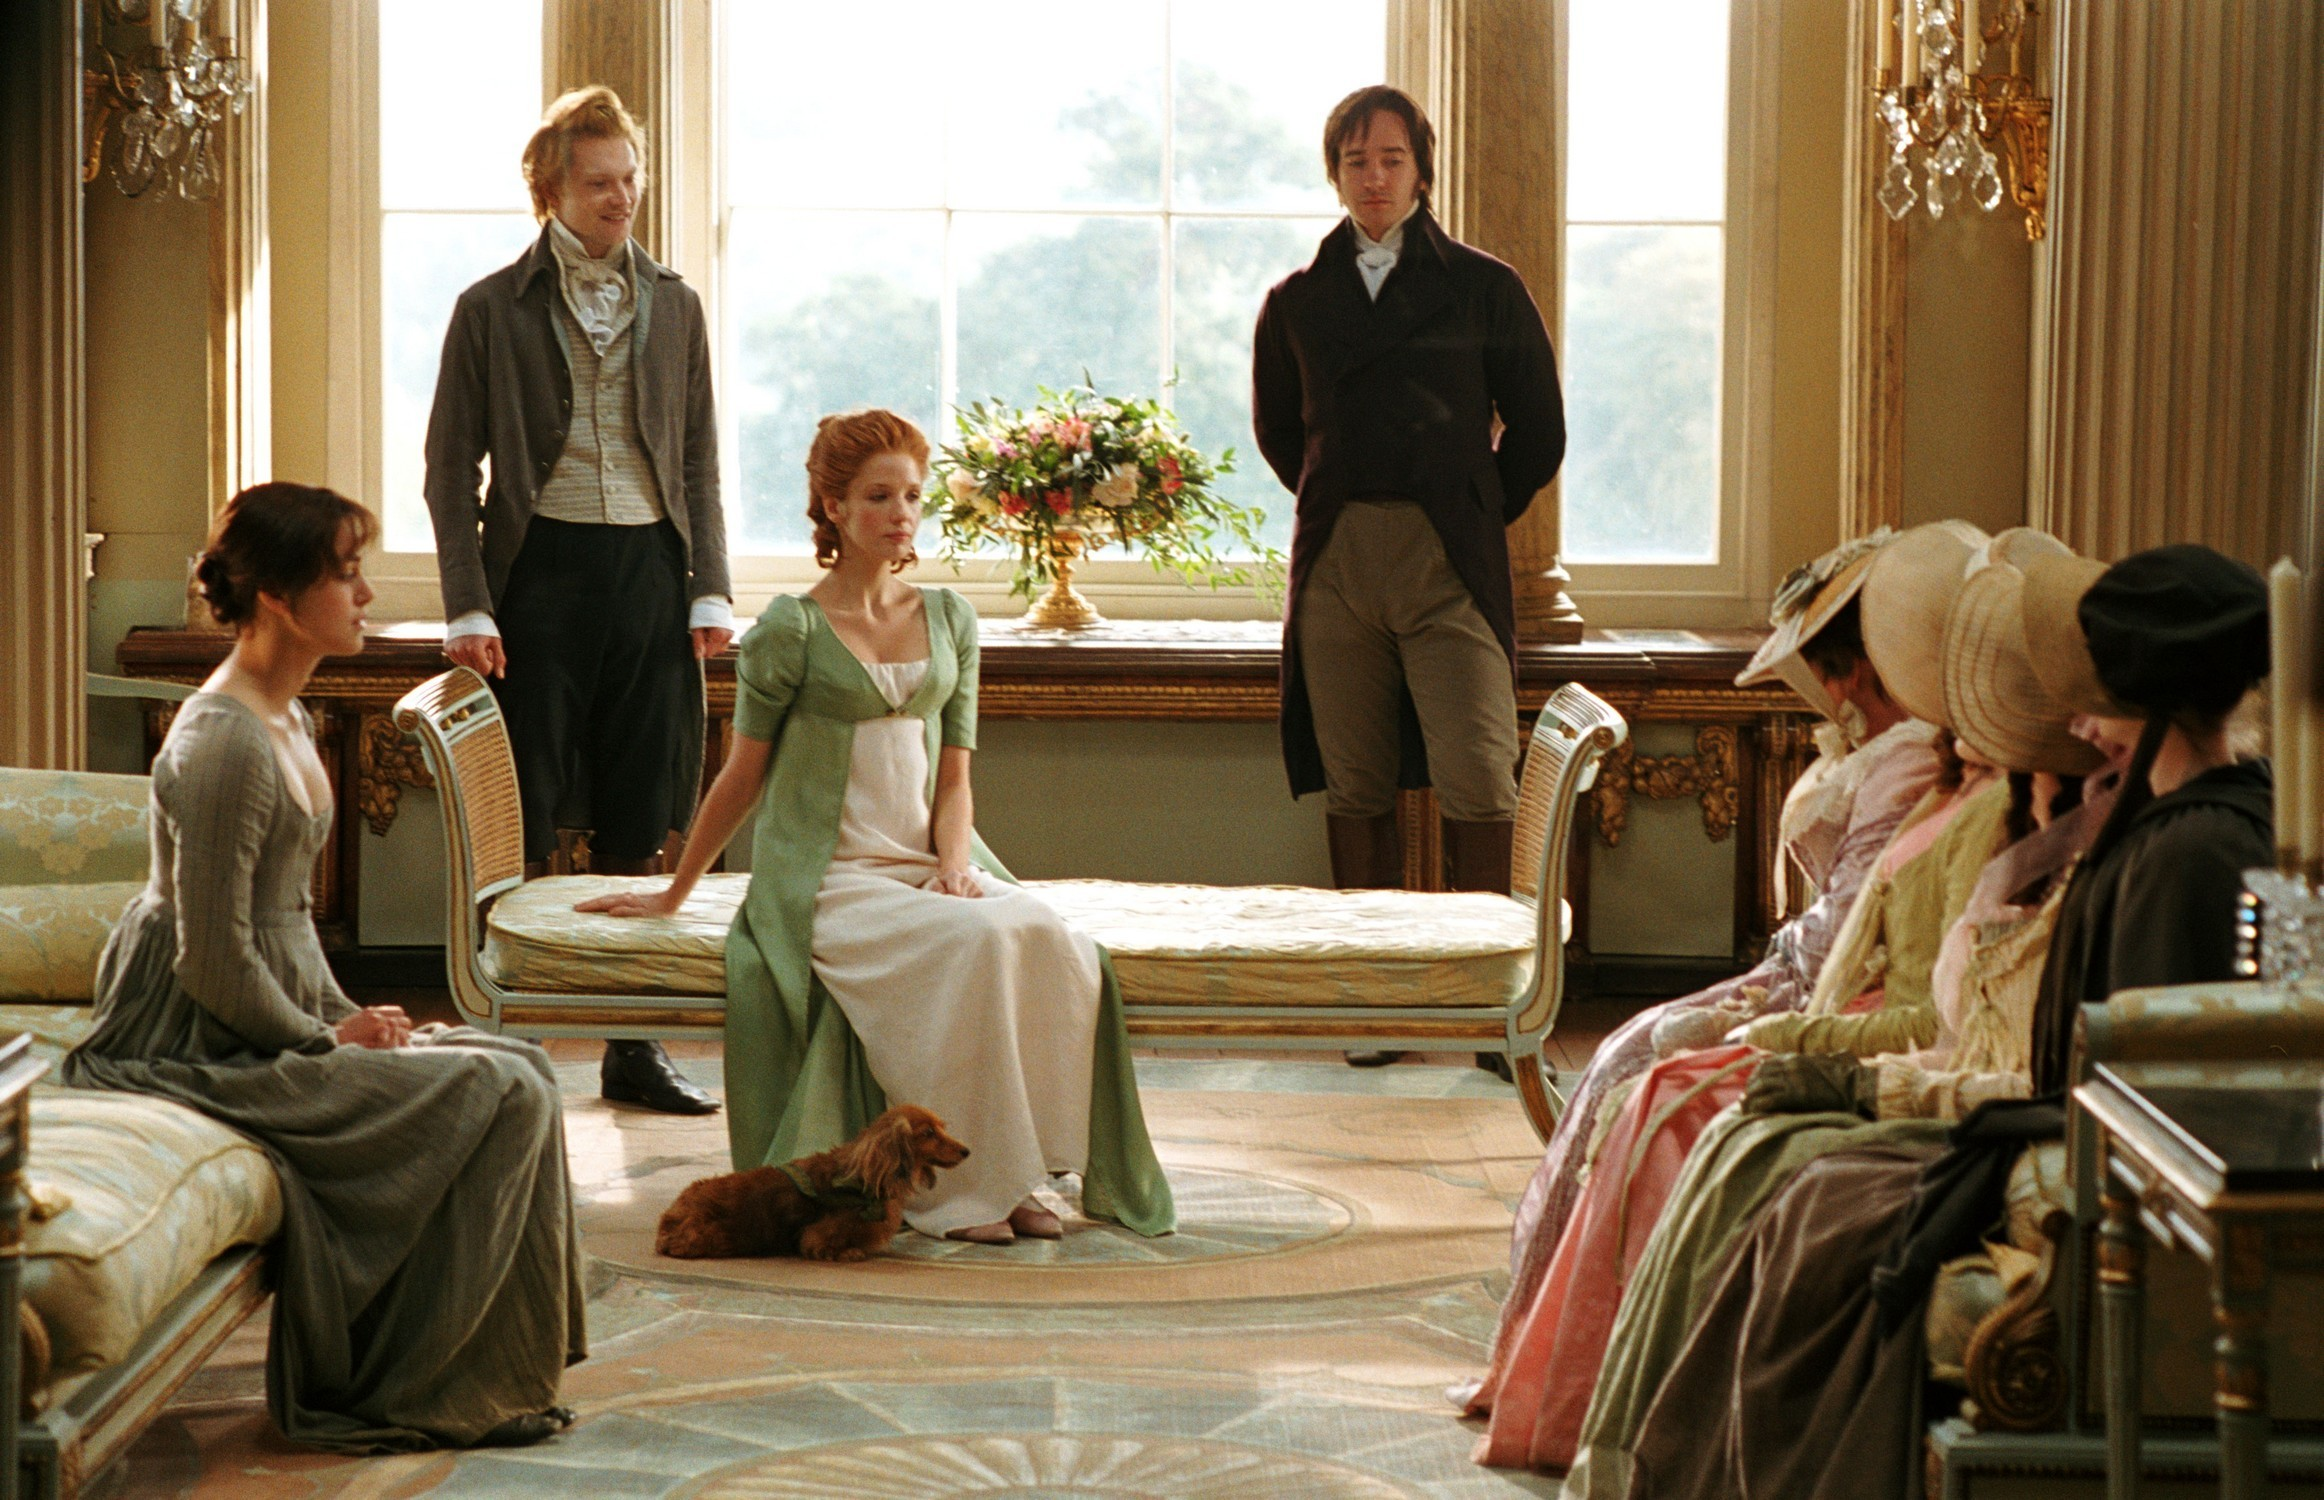 http://images4.fanpop.com/image/photos/17200000/Pride-and-Prejudice-pride-and-prejudice-2005-17217511-2324-1500.jpg